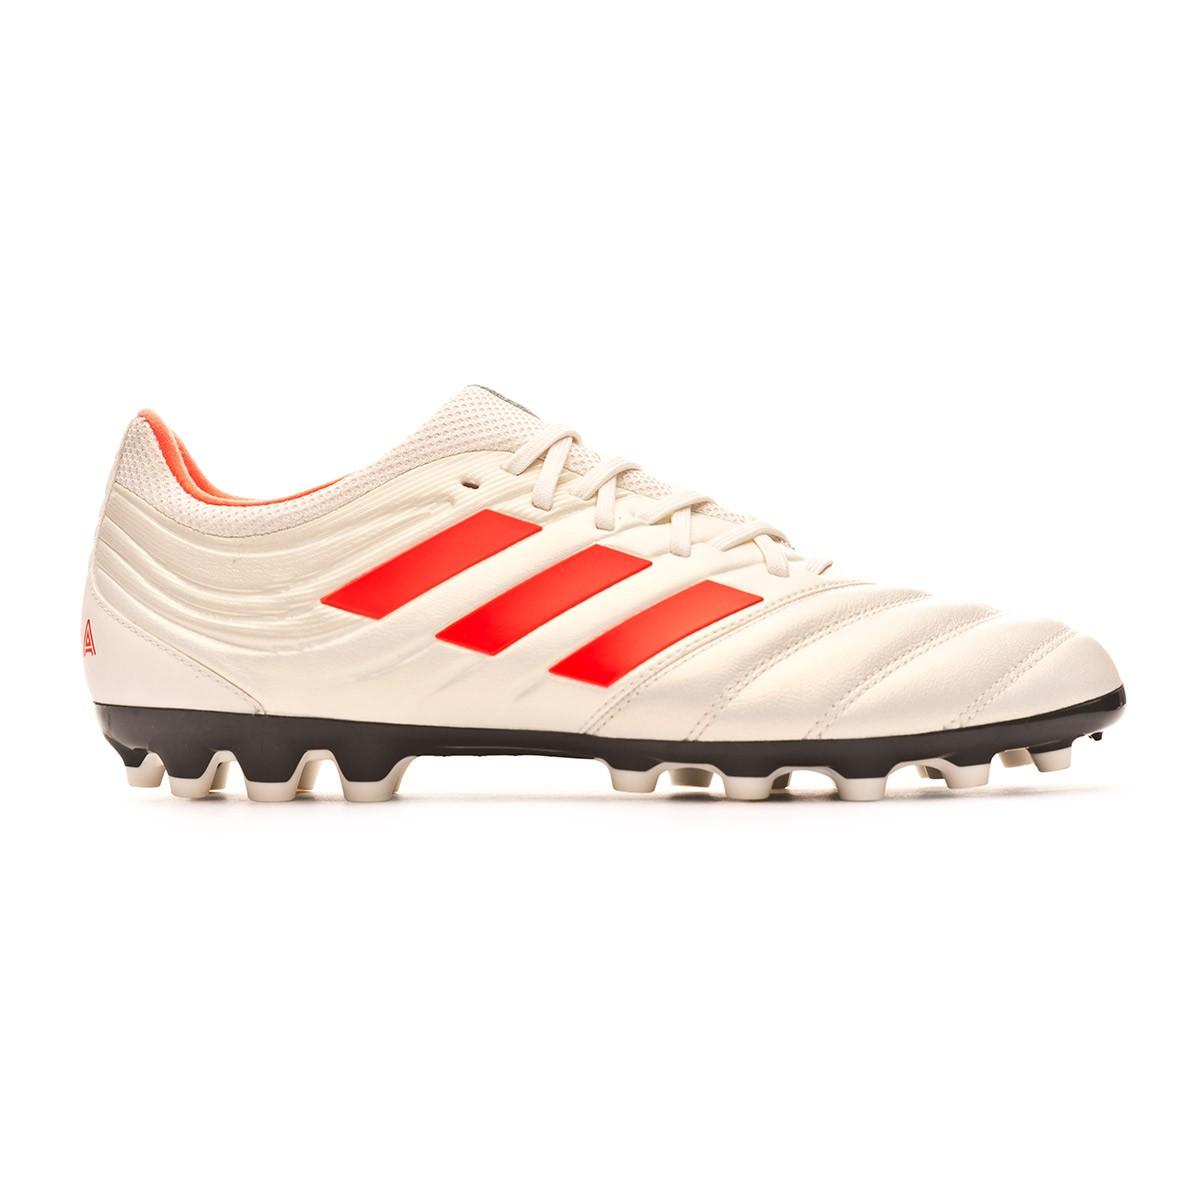 Chaussure de foot adidas Copa 19.3 FG Off white Solar red